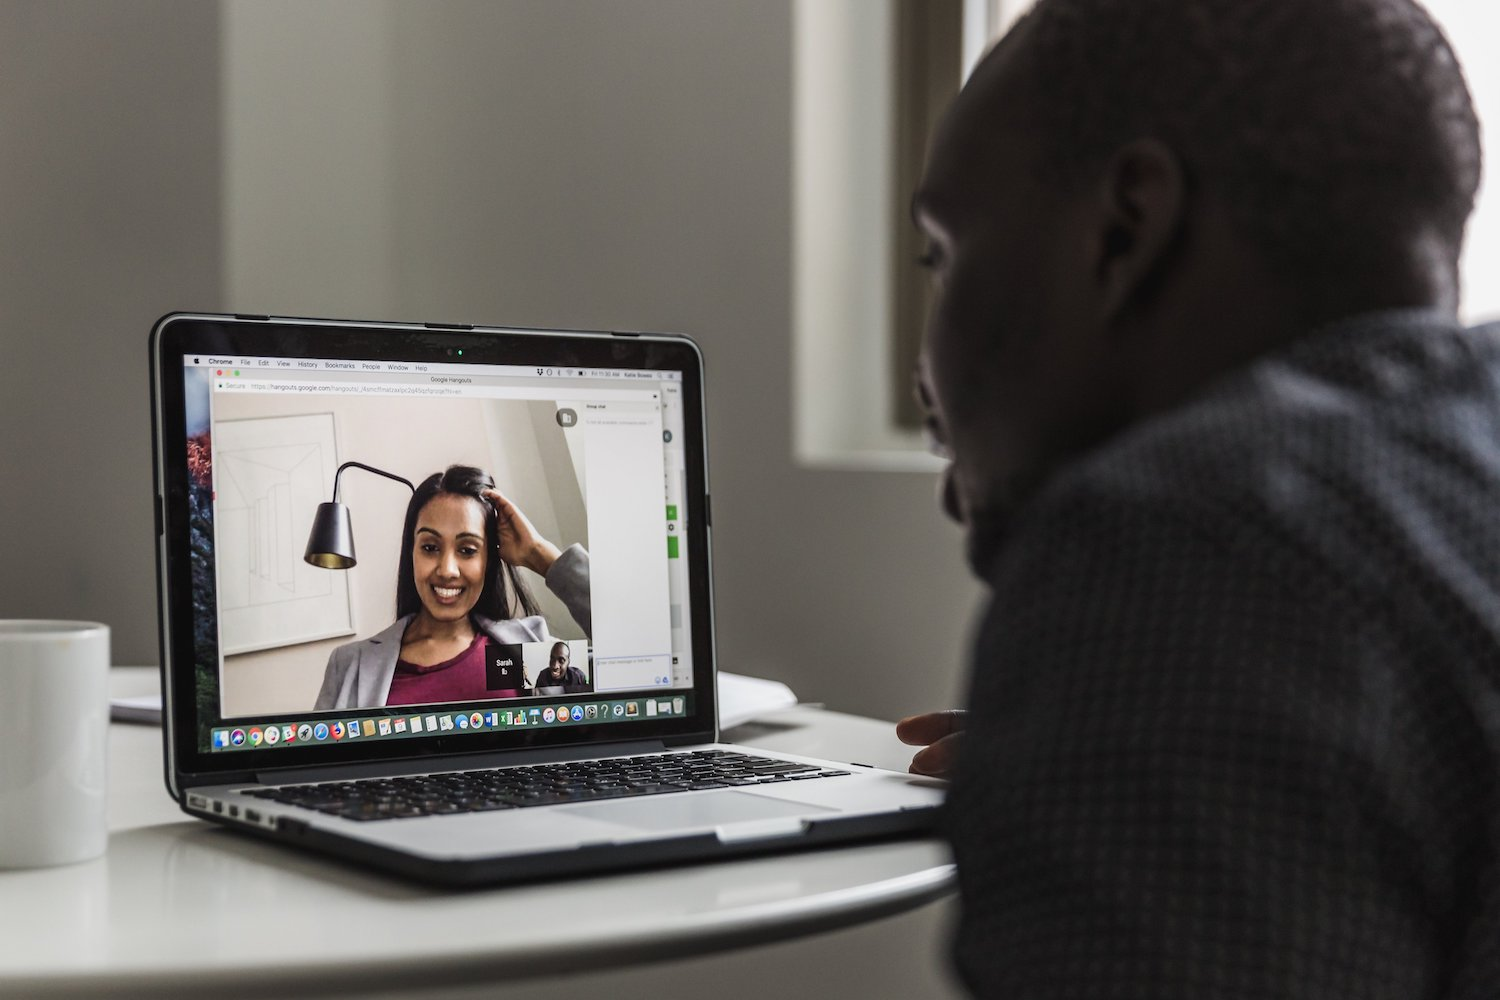 This is an image of a video conference call chat. A woman in a blazer is seen smiling on the screen while a man is talking into his computer microphone. This is a visualization of the human element in customer support.